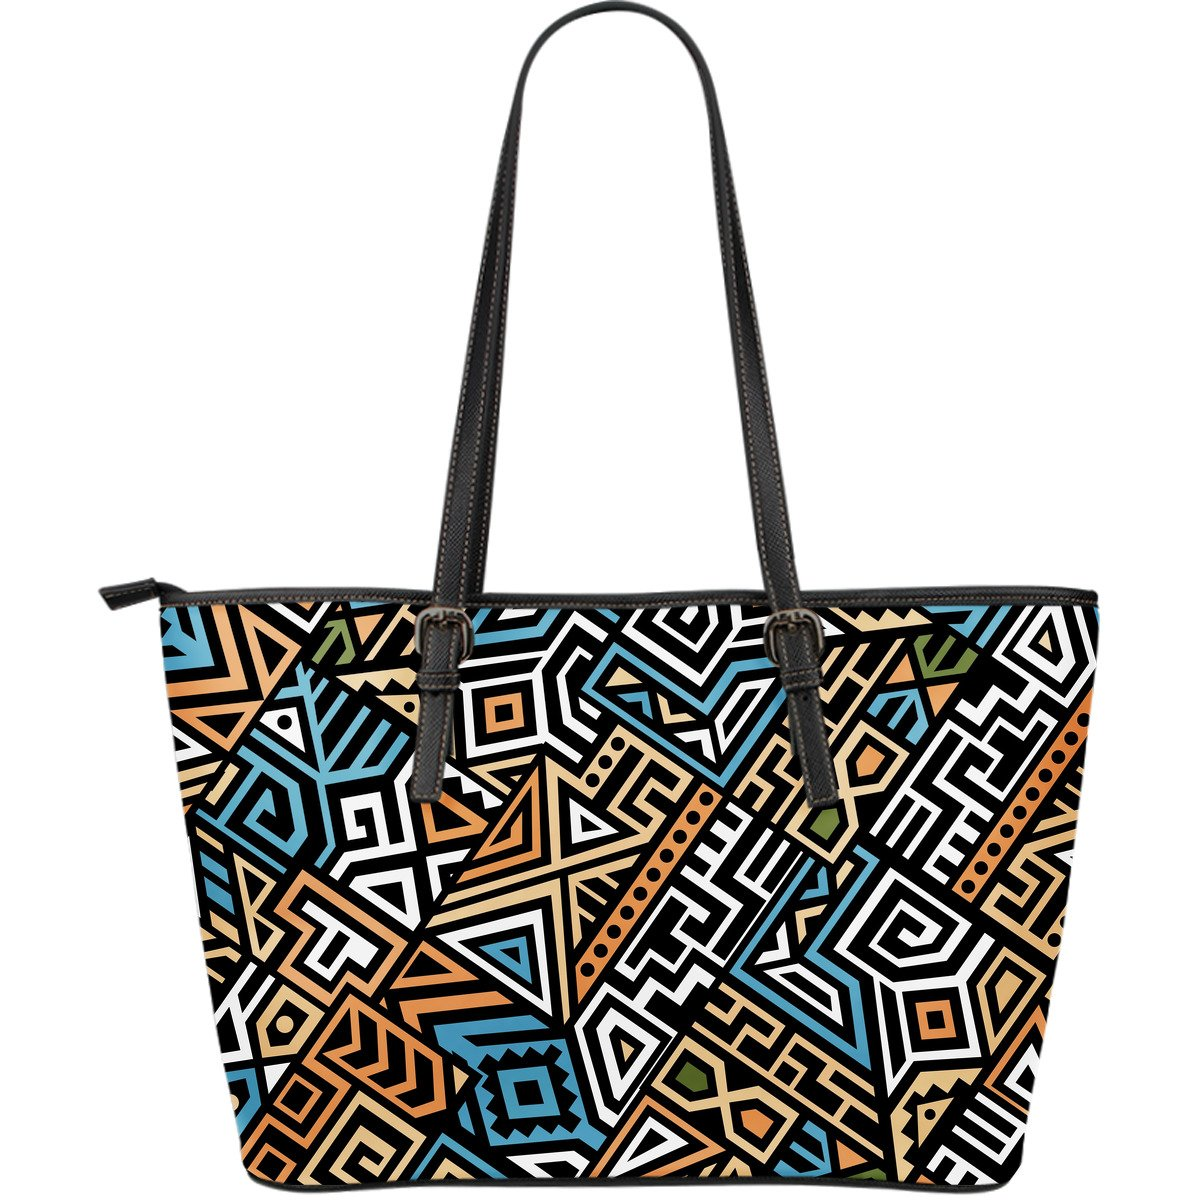 Ethnic Aztec Geometric Pattern Print Leather Tote Bag GearFrost